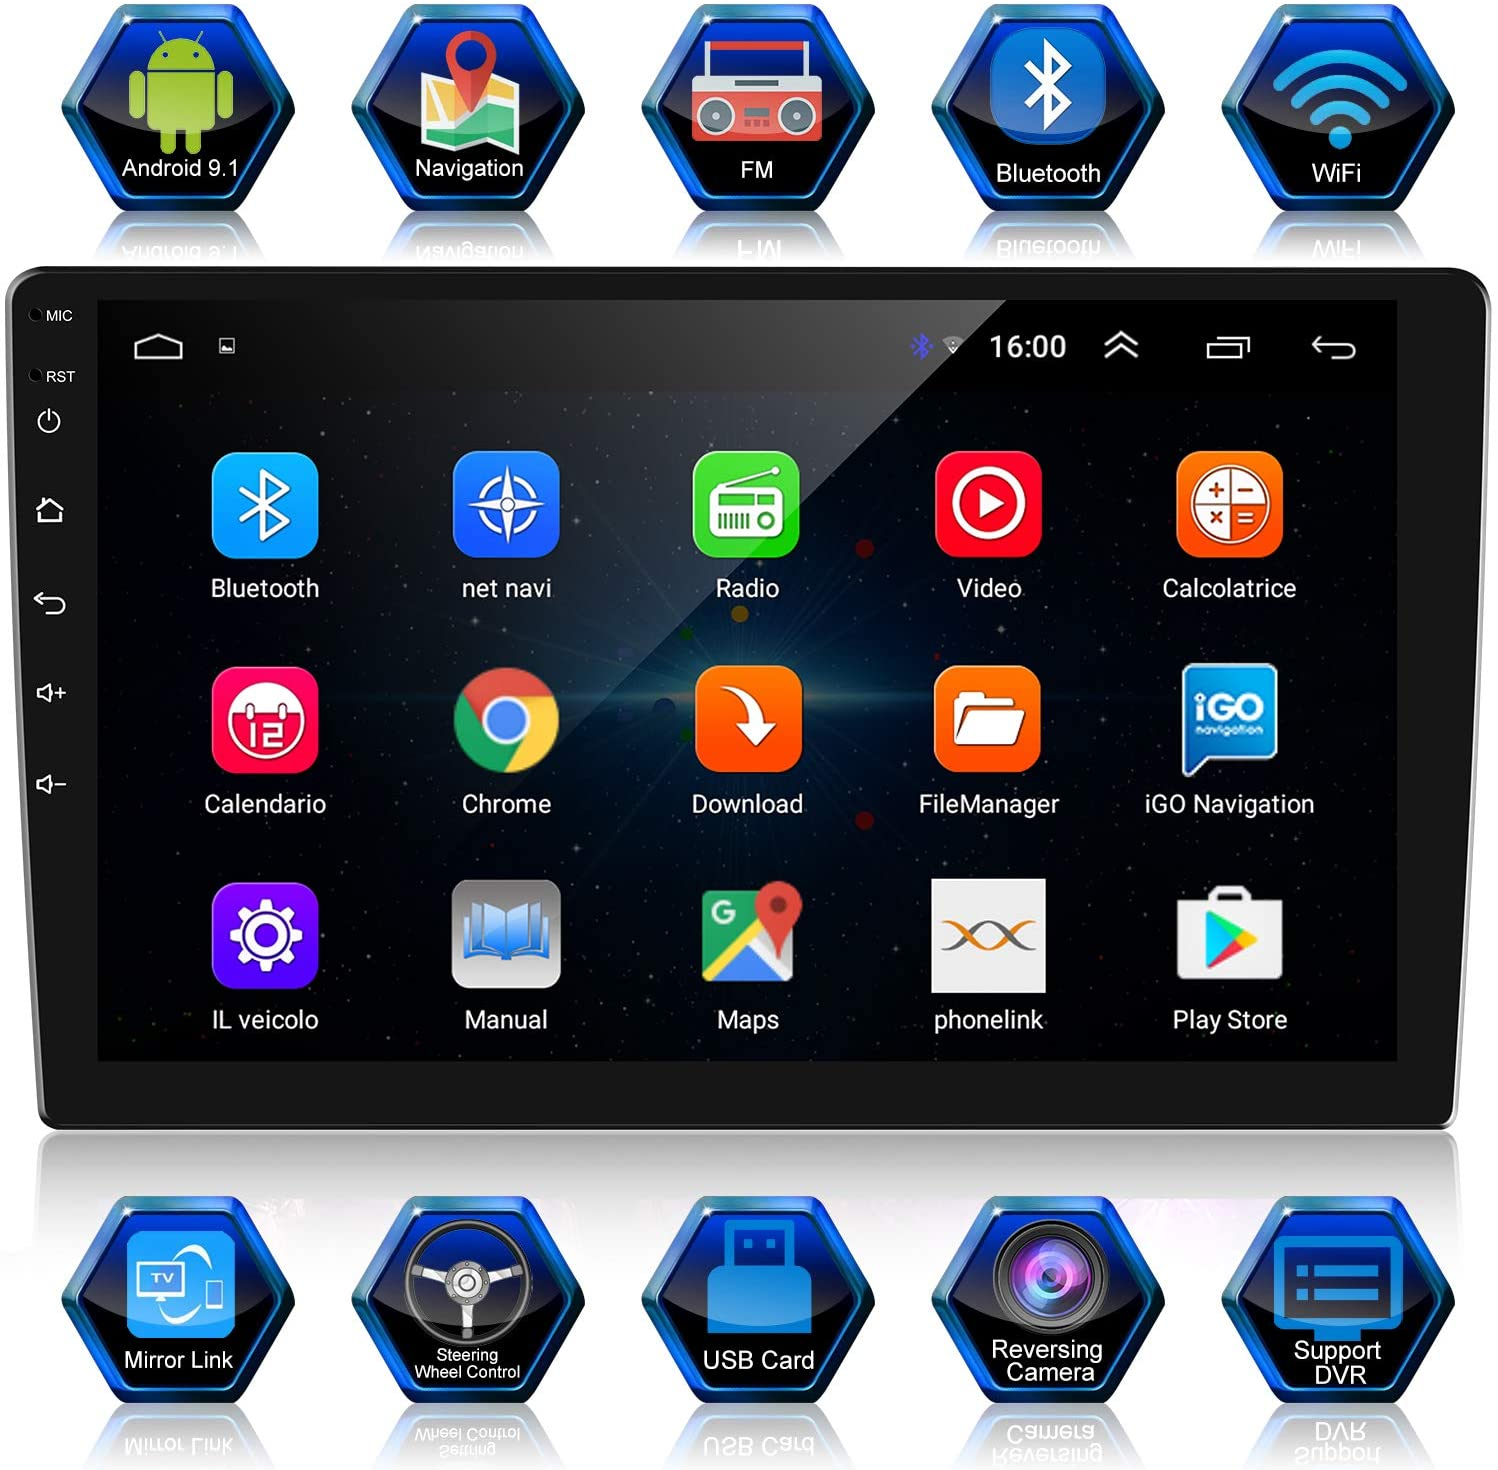 ANKEWAY Double Din Android Car Stereo with GPS/HiFi/WiFi/Bluetooth/RDS/FM, 10.1 Inch 1080P HD Touch Screen Car Radio Bluetooth Hands-Free Supports Mirror Link(Android/iOS)+Backup Camera+Dual USB